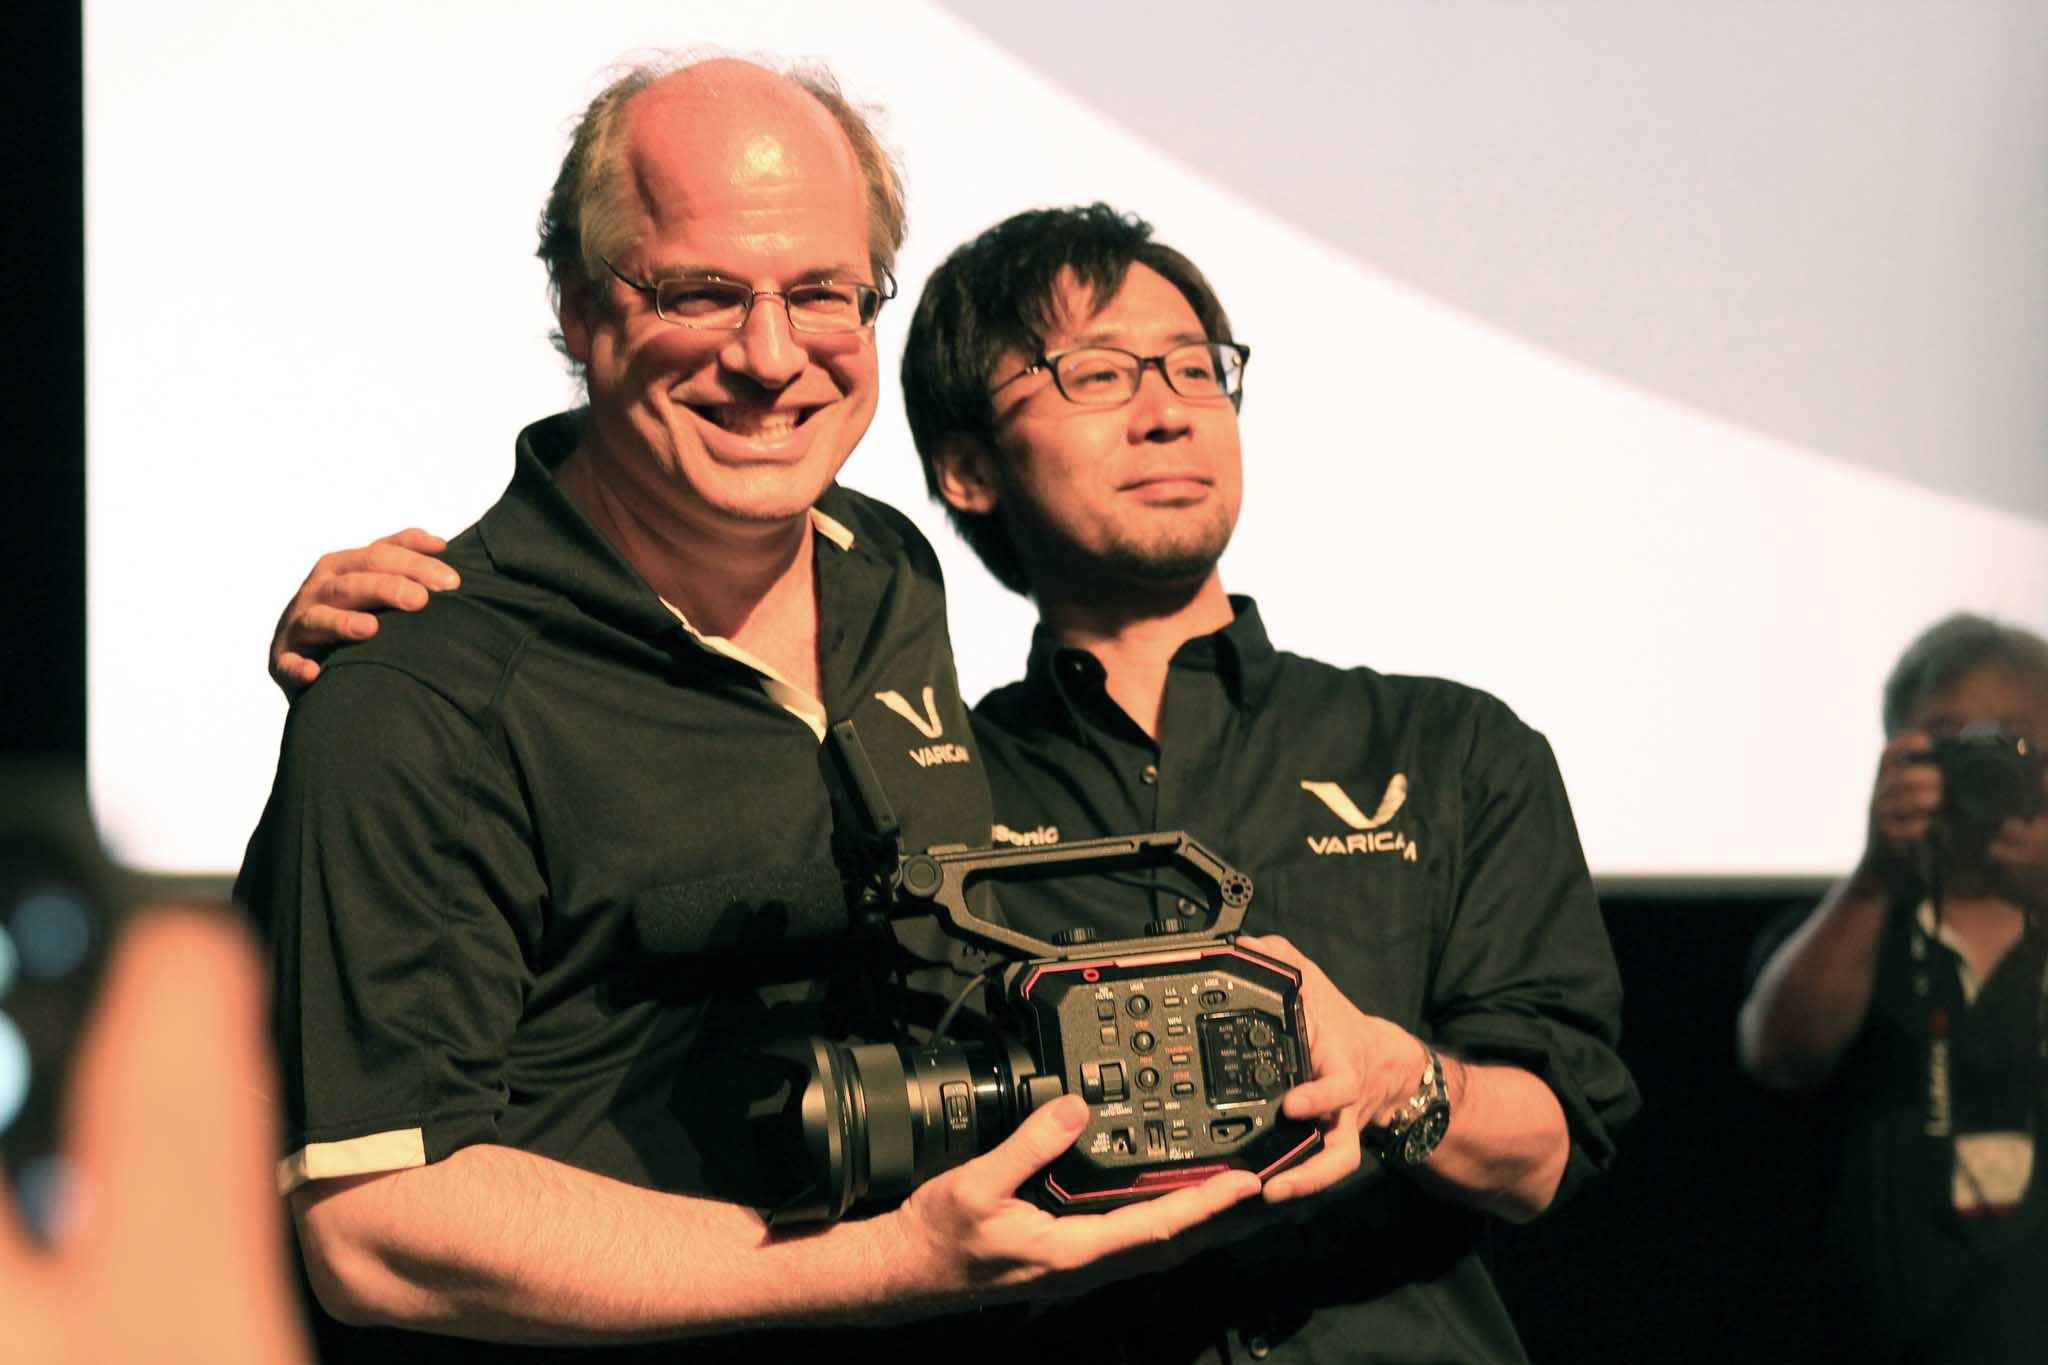 Takahiro Mitsui, Team Leader of VariCam Engineering and Mitch Gross, Cinema Product Manager at Cine Gear unveiling